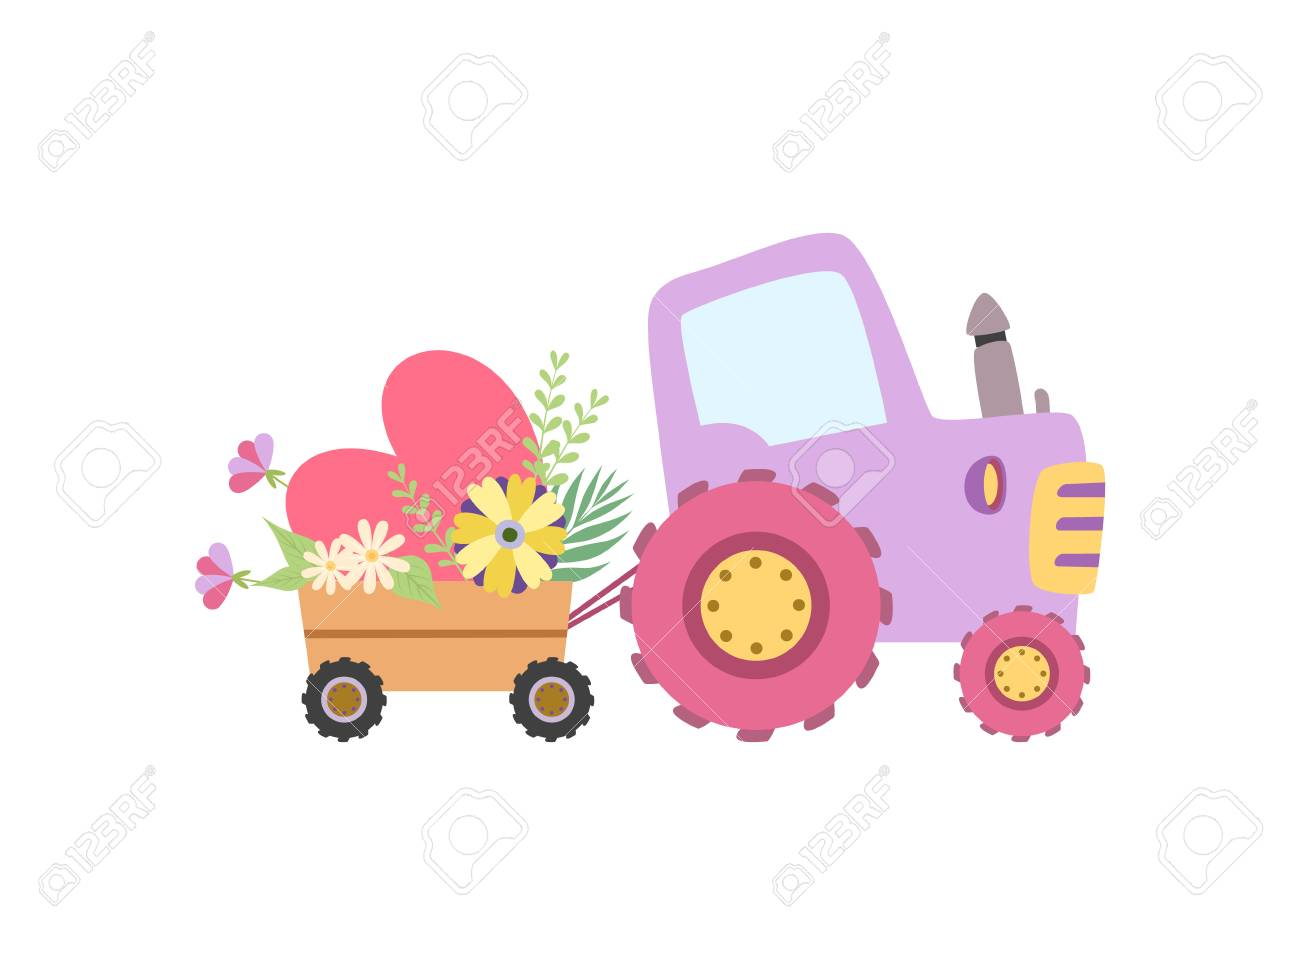 Cute Colorful Tractor with Cart Full of Flowers Vector Illustration on White Background. - 123096110